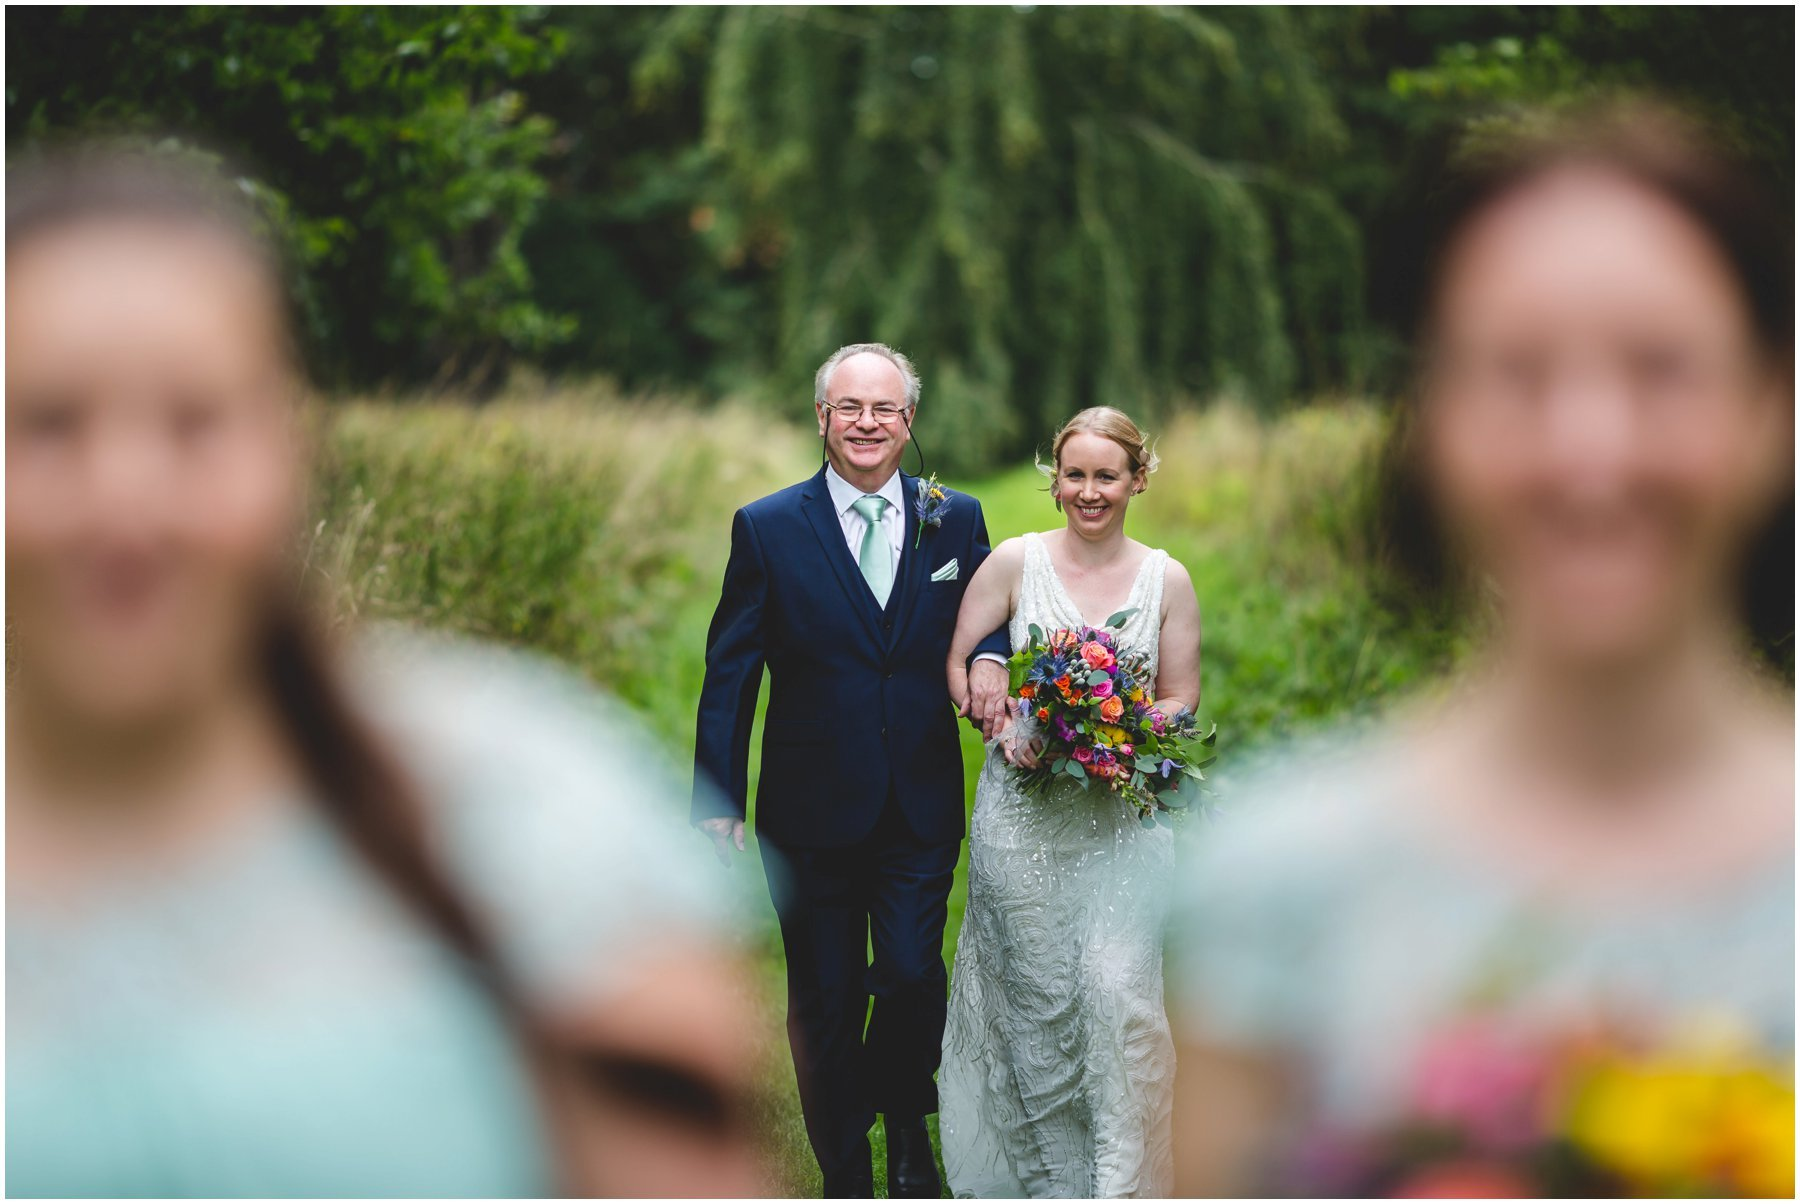 ANDY DAVISON - CHAUCER BARN WEDDING PHOTOGRAPHER